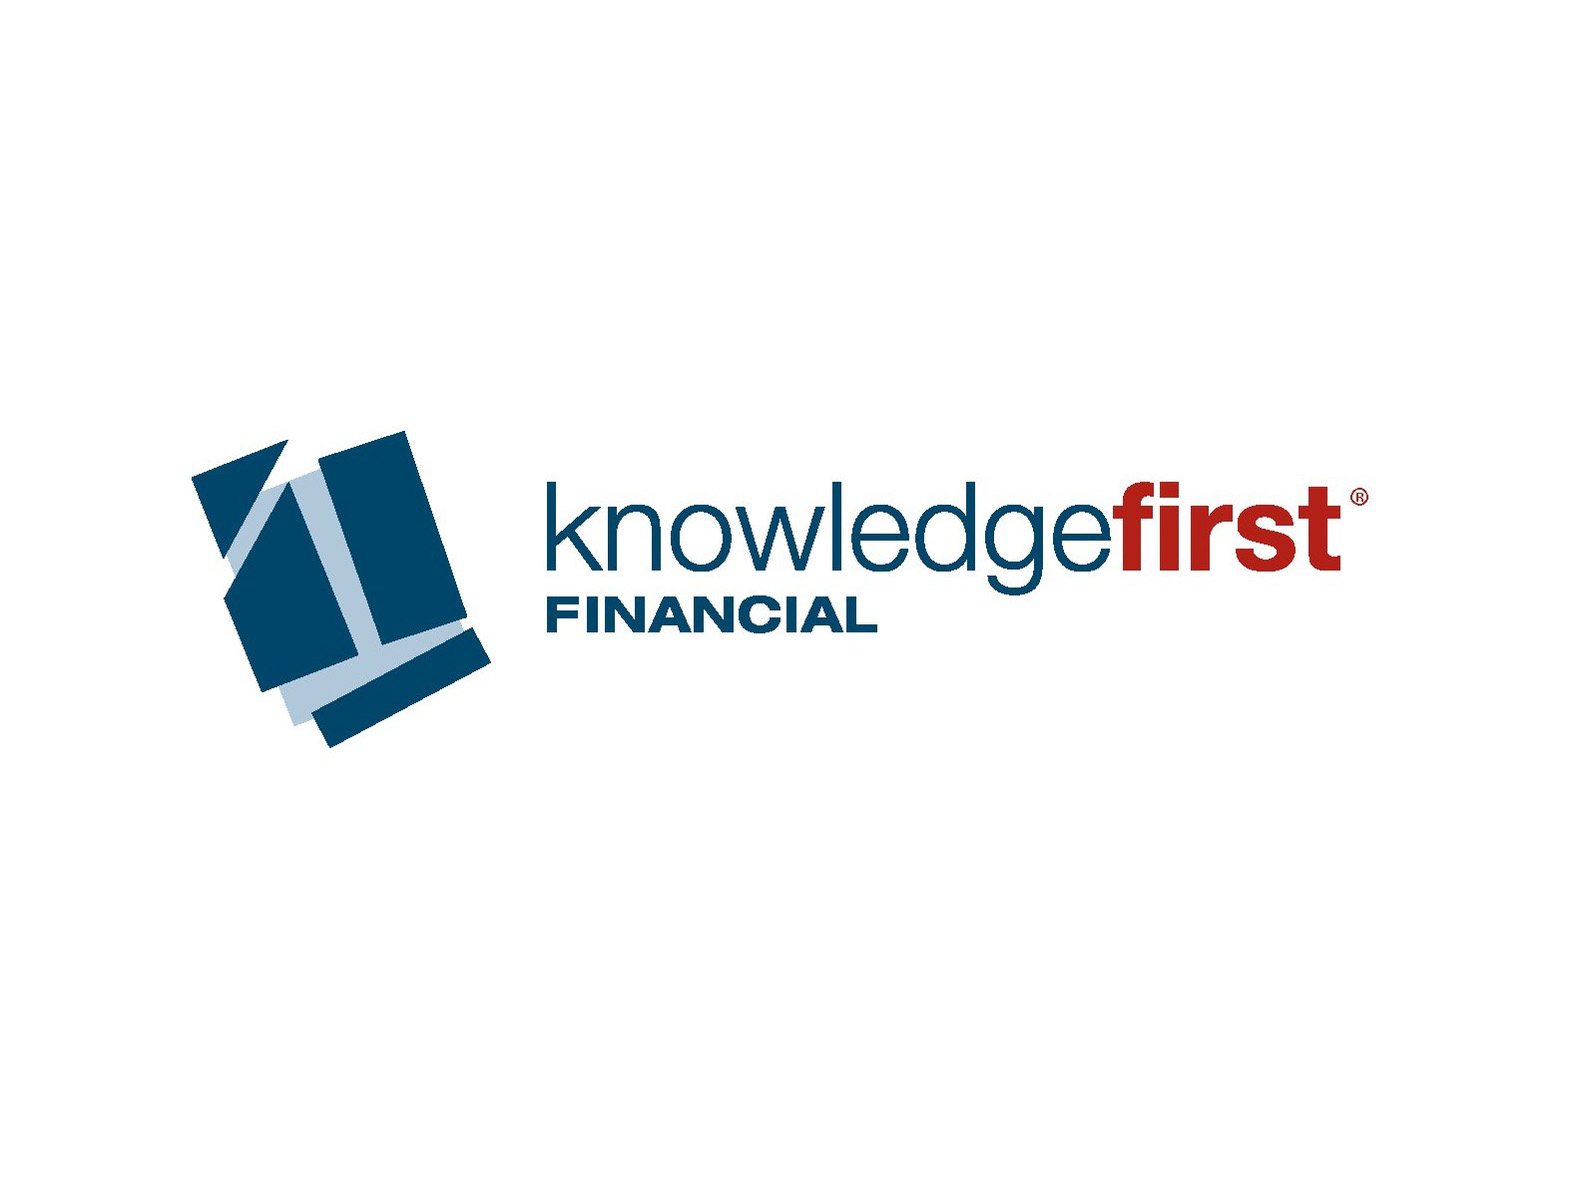 Knowledge_First_Financial_Inc__Family_Single_Student_Education_S.jpg